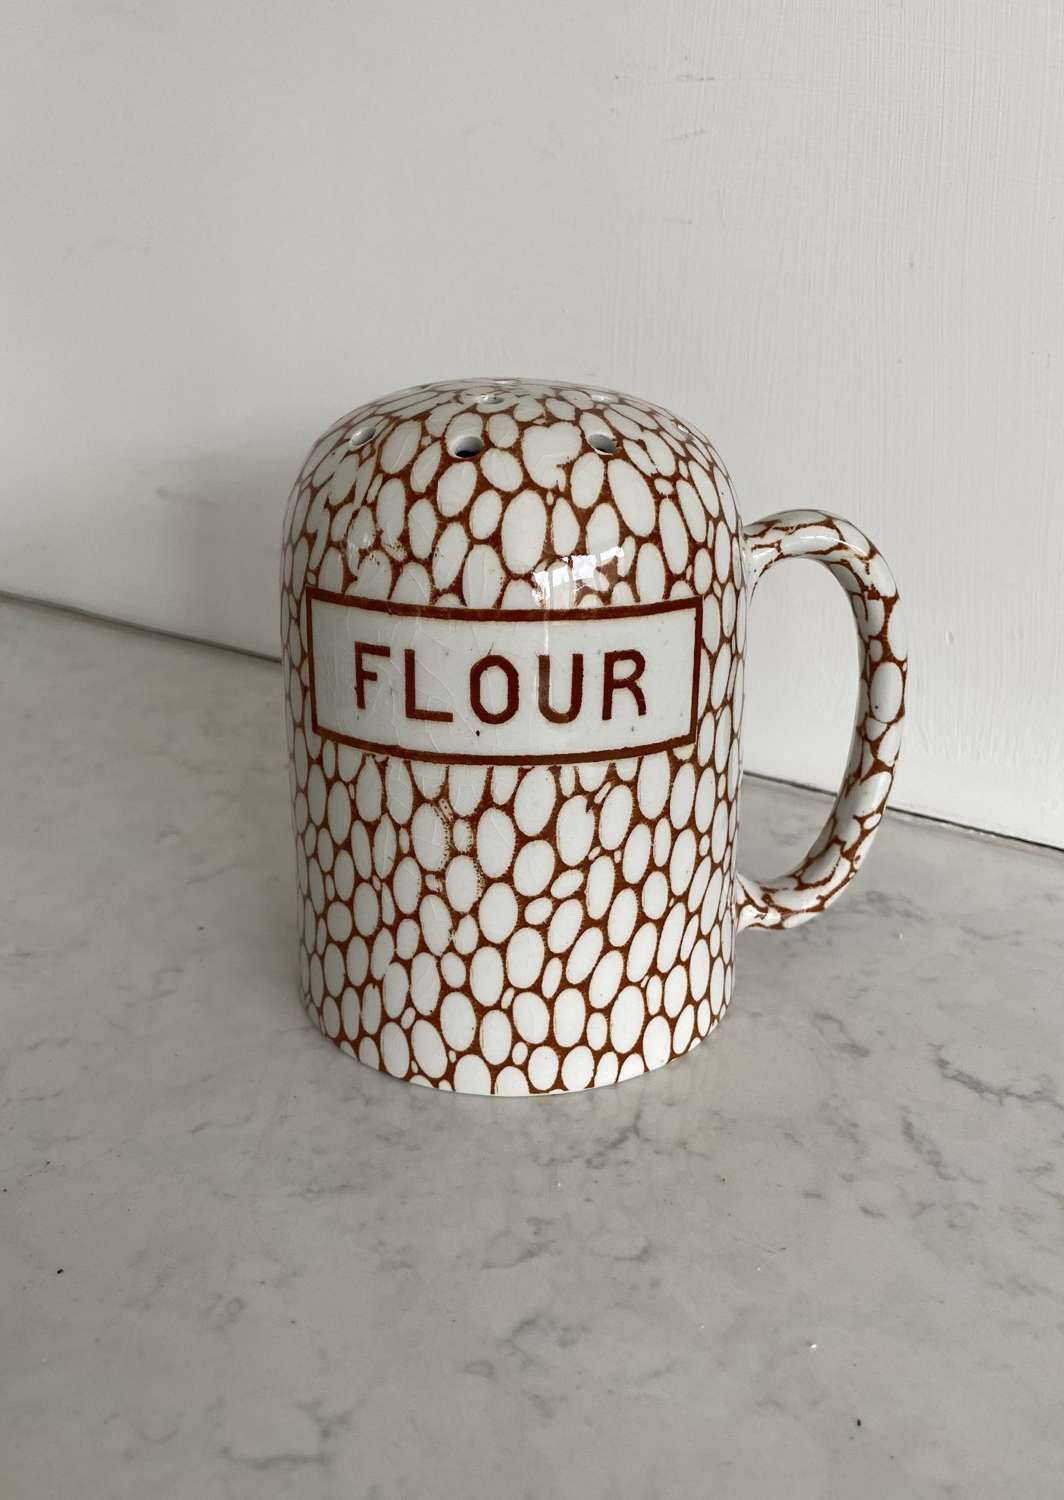 Maling Brown Cobblestone Flour Shaker in Lovely Condition